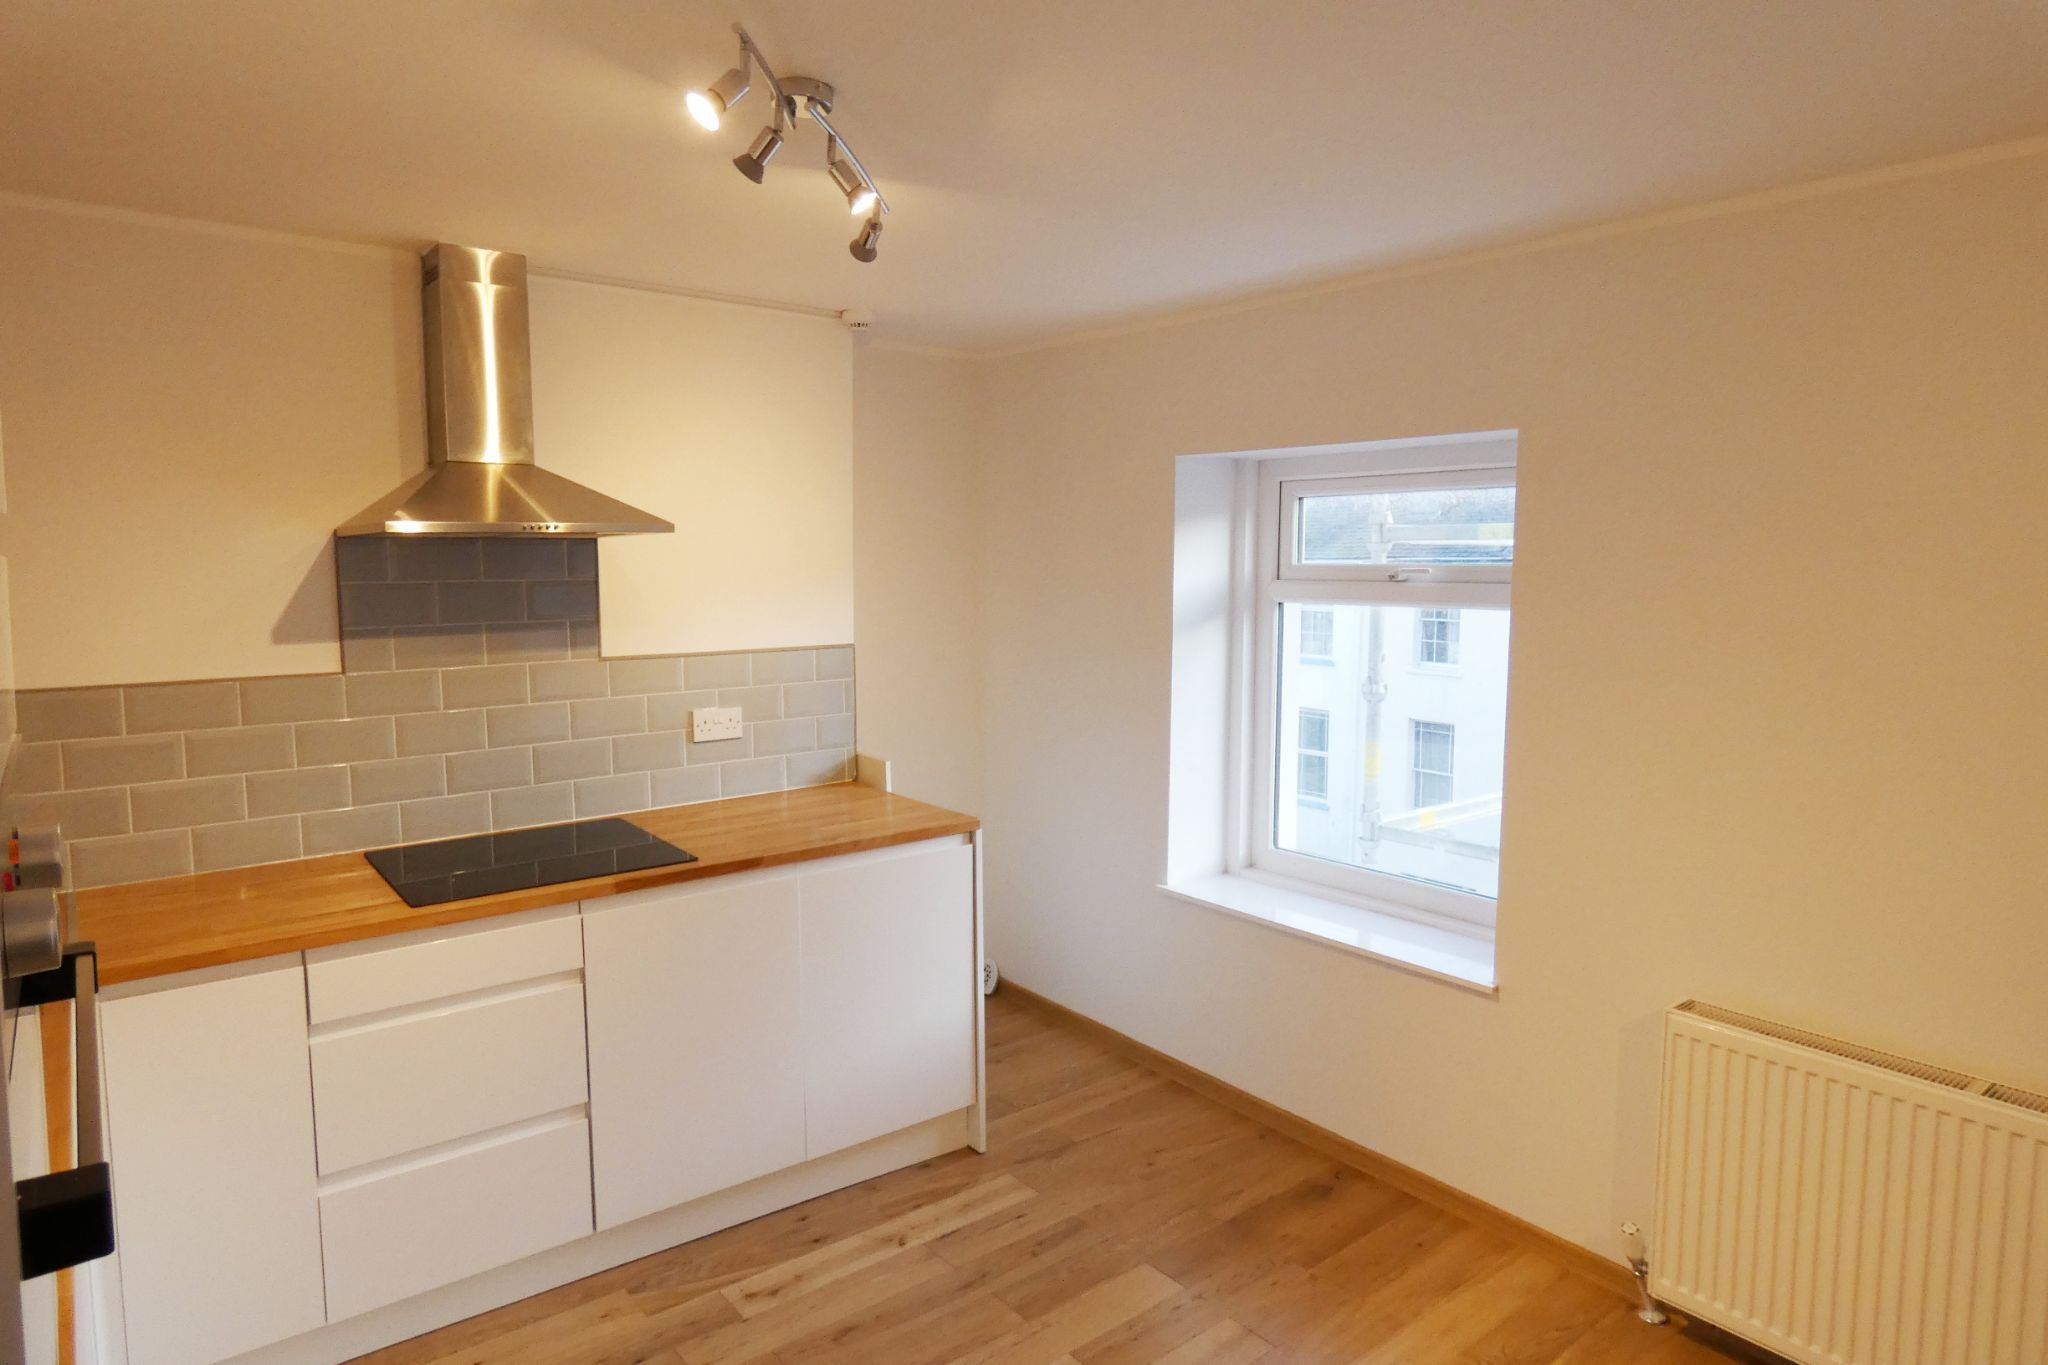 1 bedroom flat flat/apartment SSTC in Douglas - Photograph 4